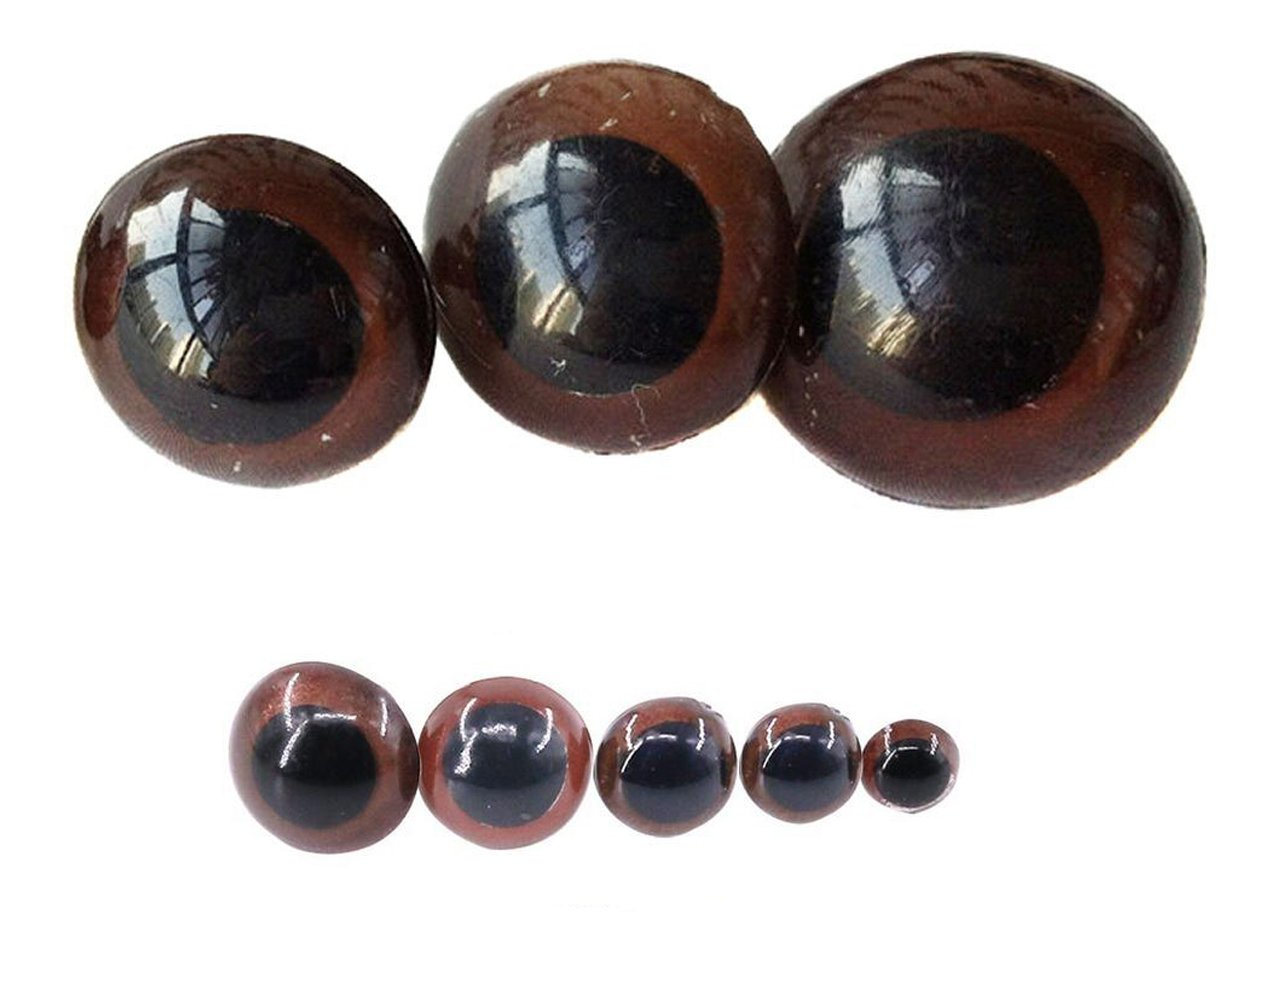 UPSTORE 100PCS Brown Plastic Safety Screw Eyes Craft Eyes with Washer for DIY Toy Teady Bear Puppet Doll Making Accessories Supply Diameter 18mm